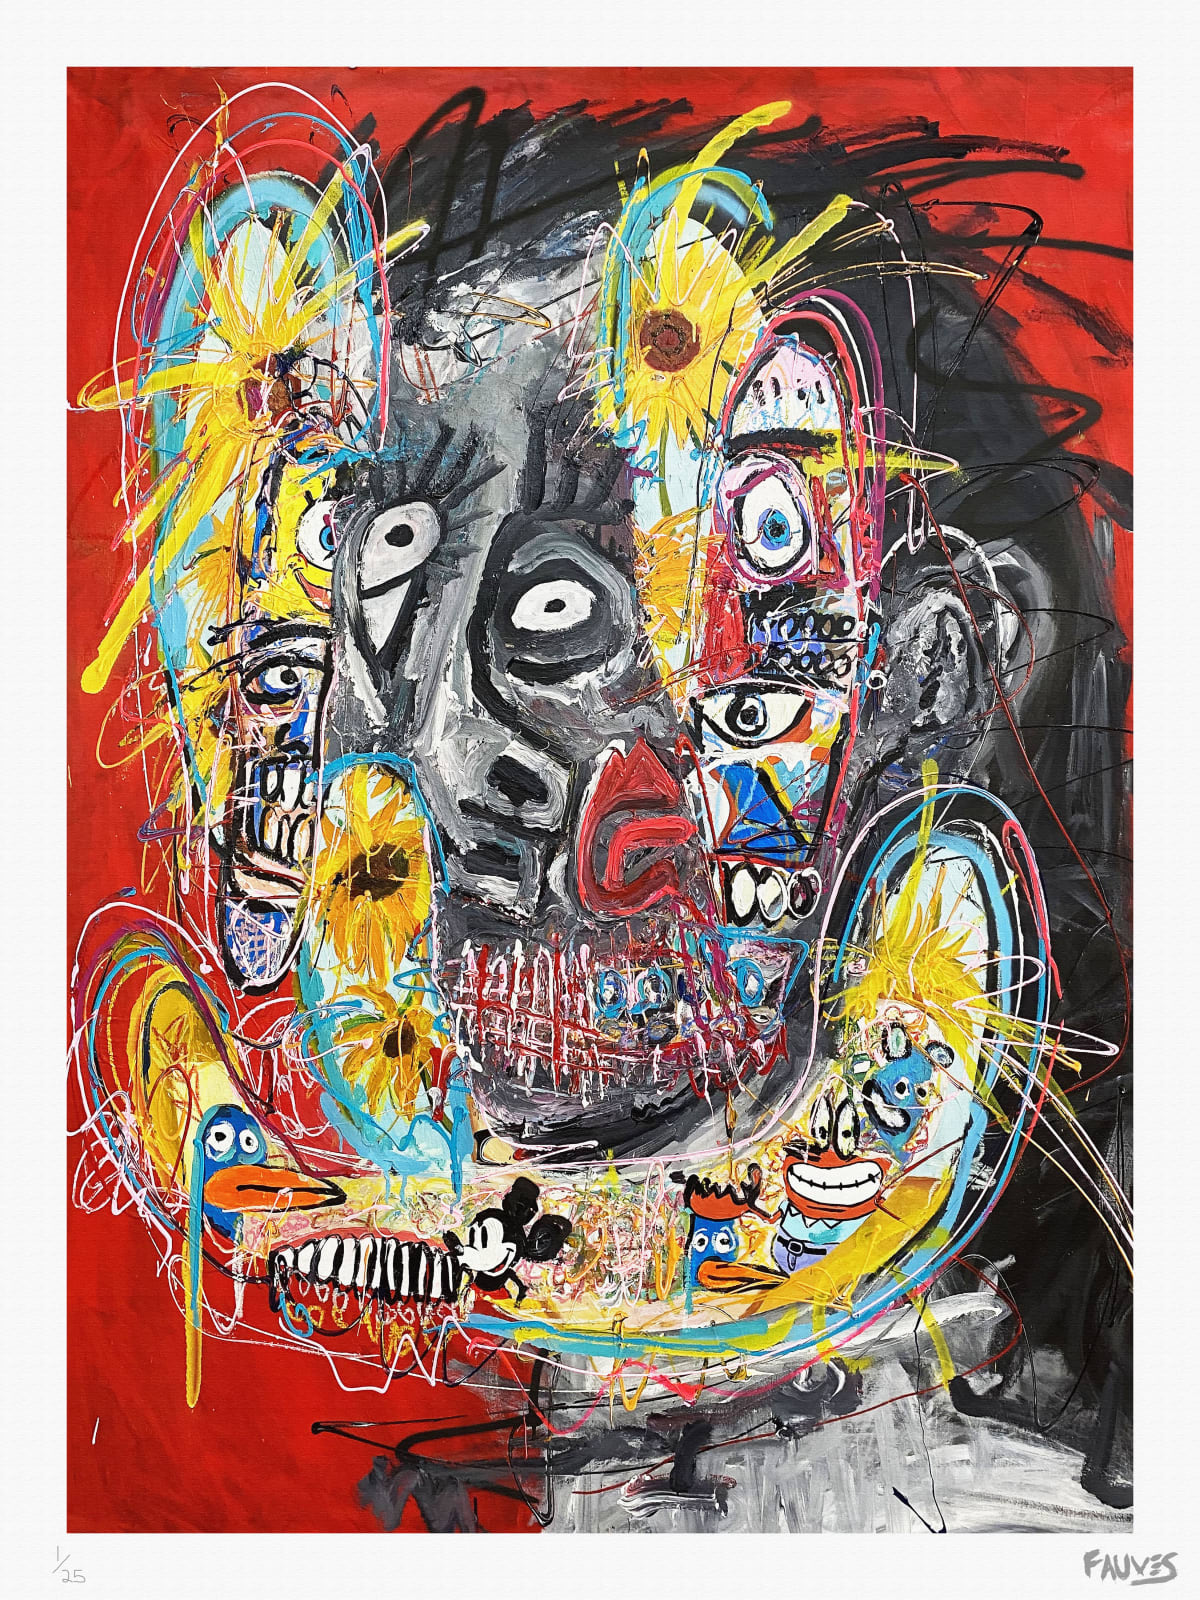 Portrait of the Soul (Red) (On Paper) by John Paul Fauves